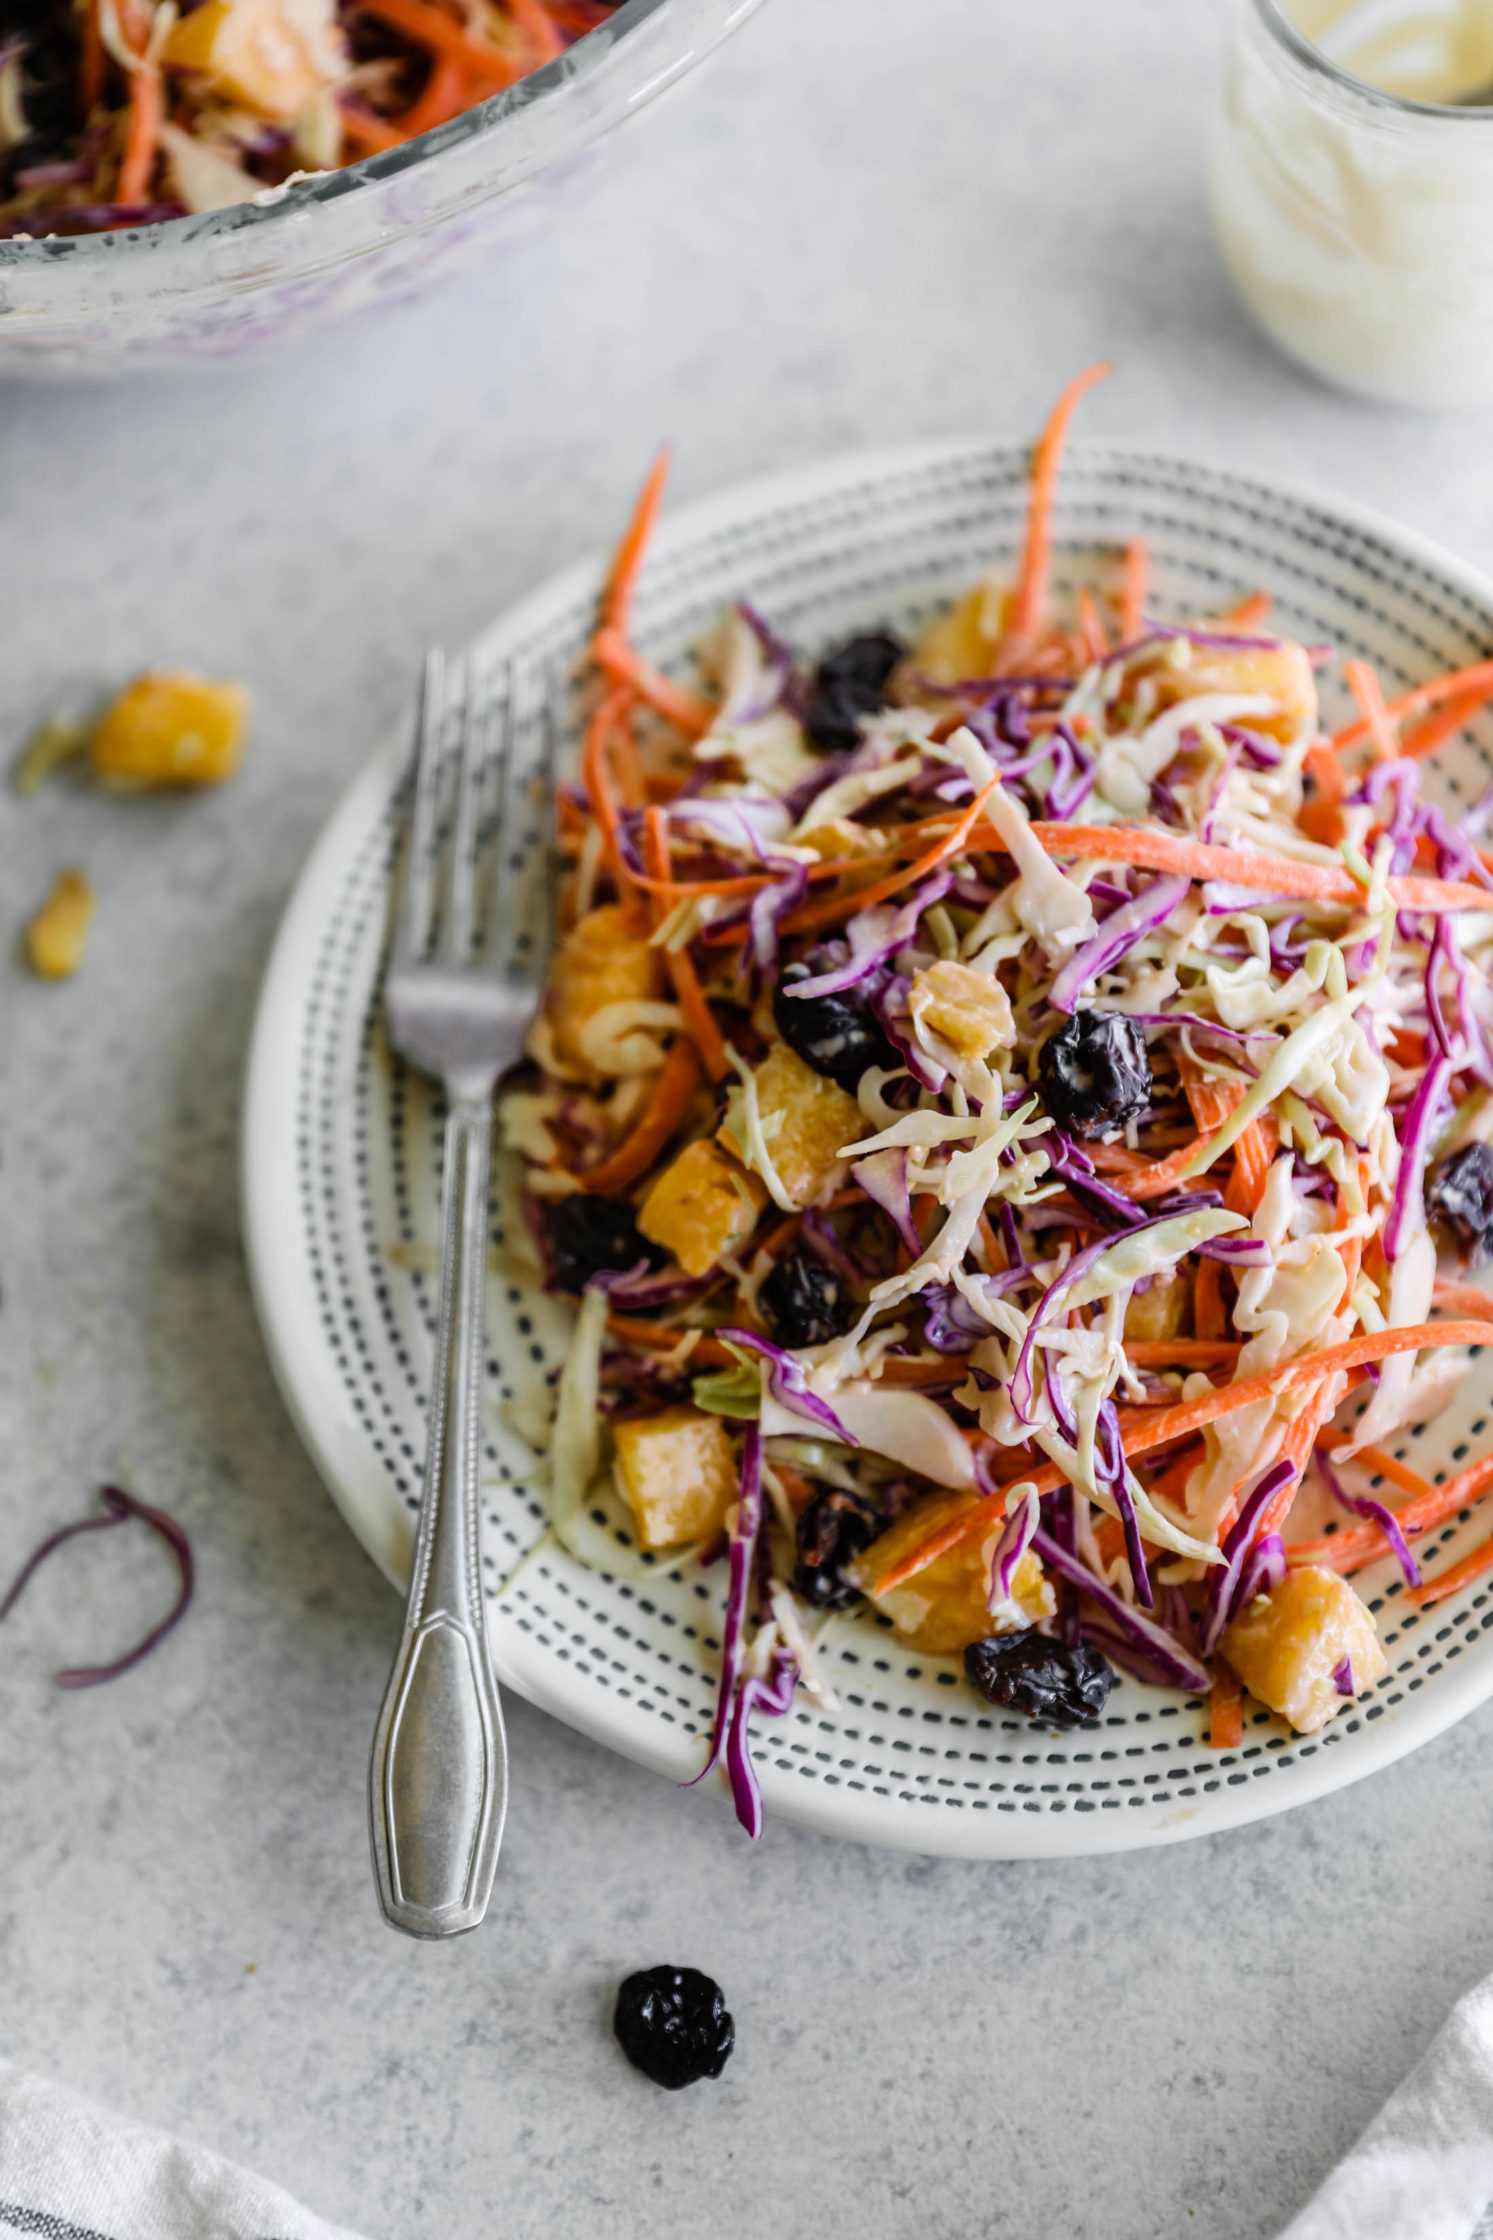 Vegan Pineapple Coleslaw with Cherries by Flora & Vino